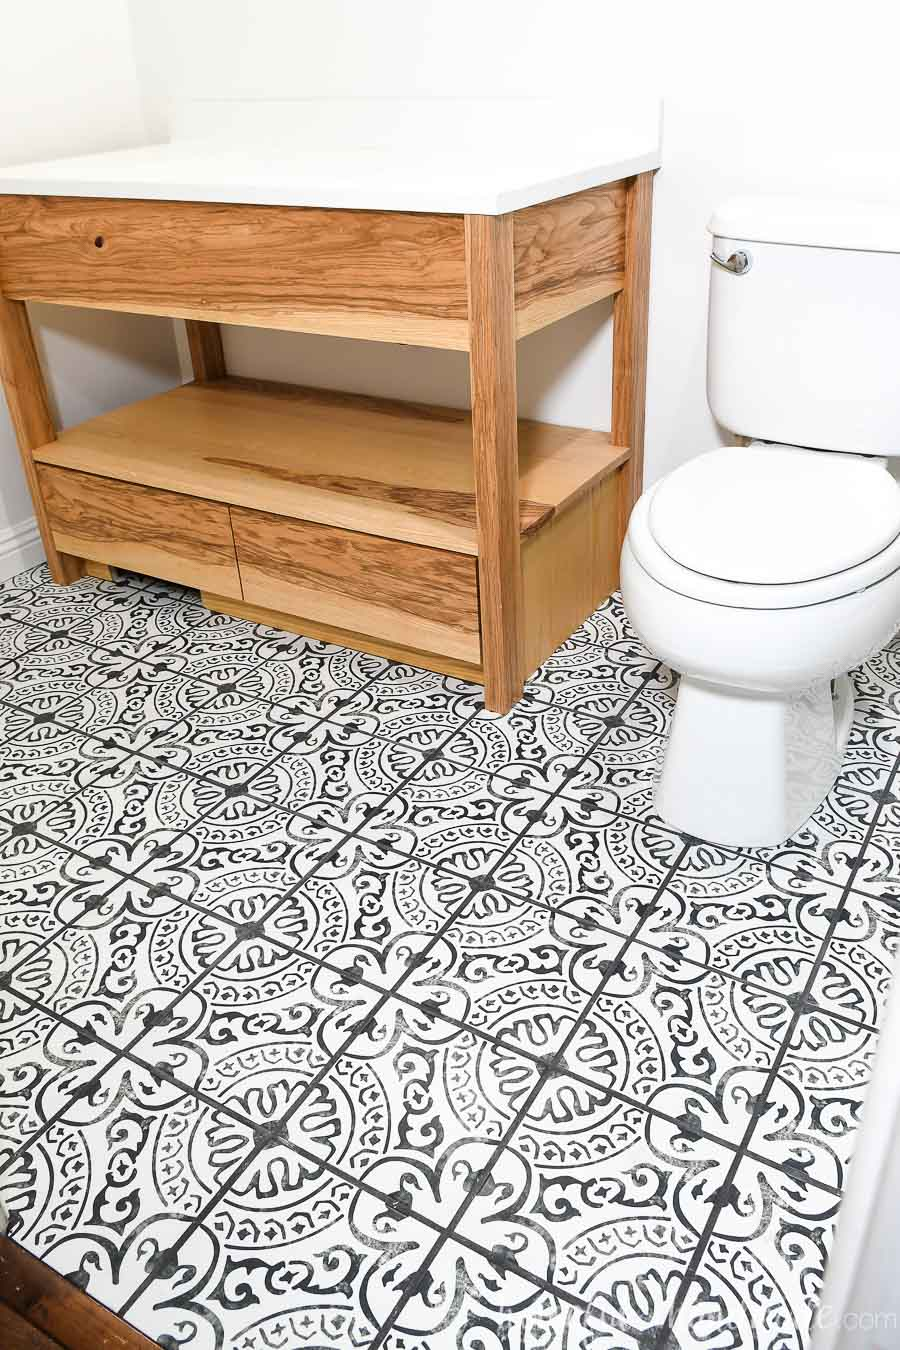 Bathroom with ash wood vanity and black and white porcelain floor tiles.